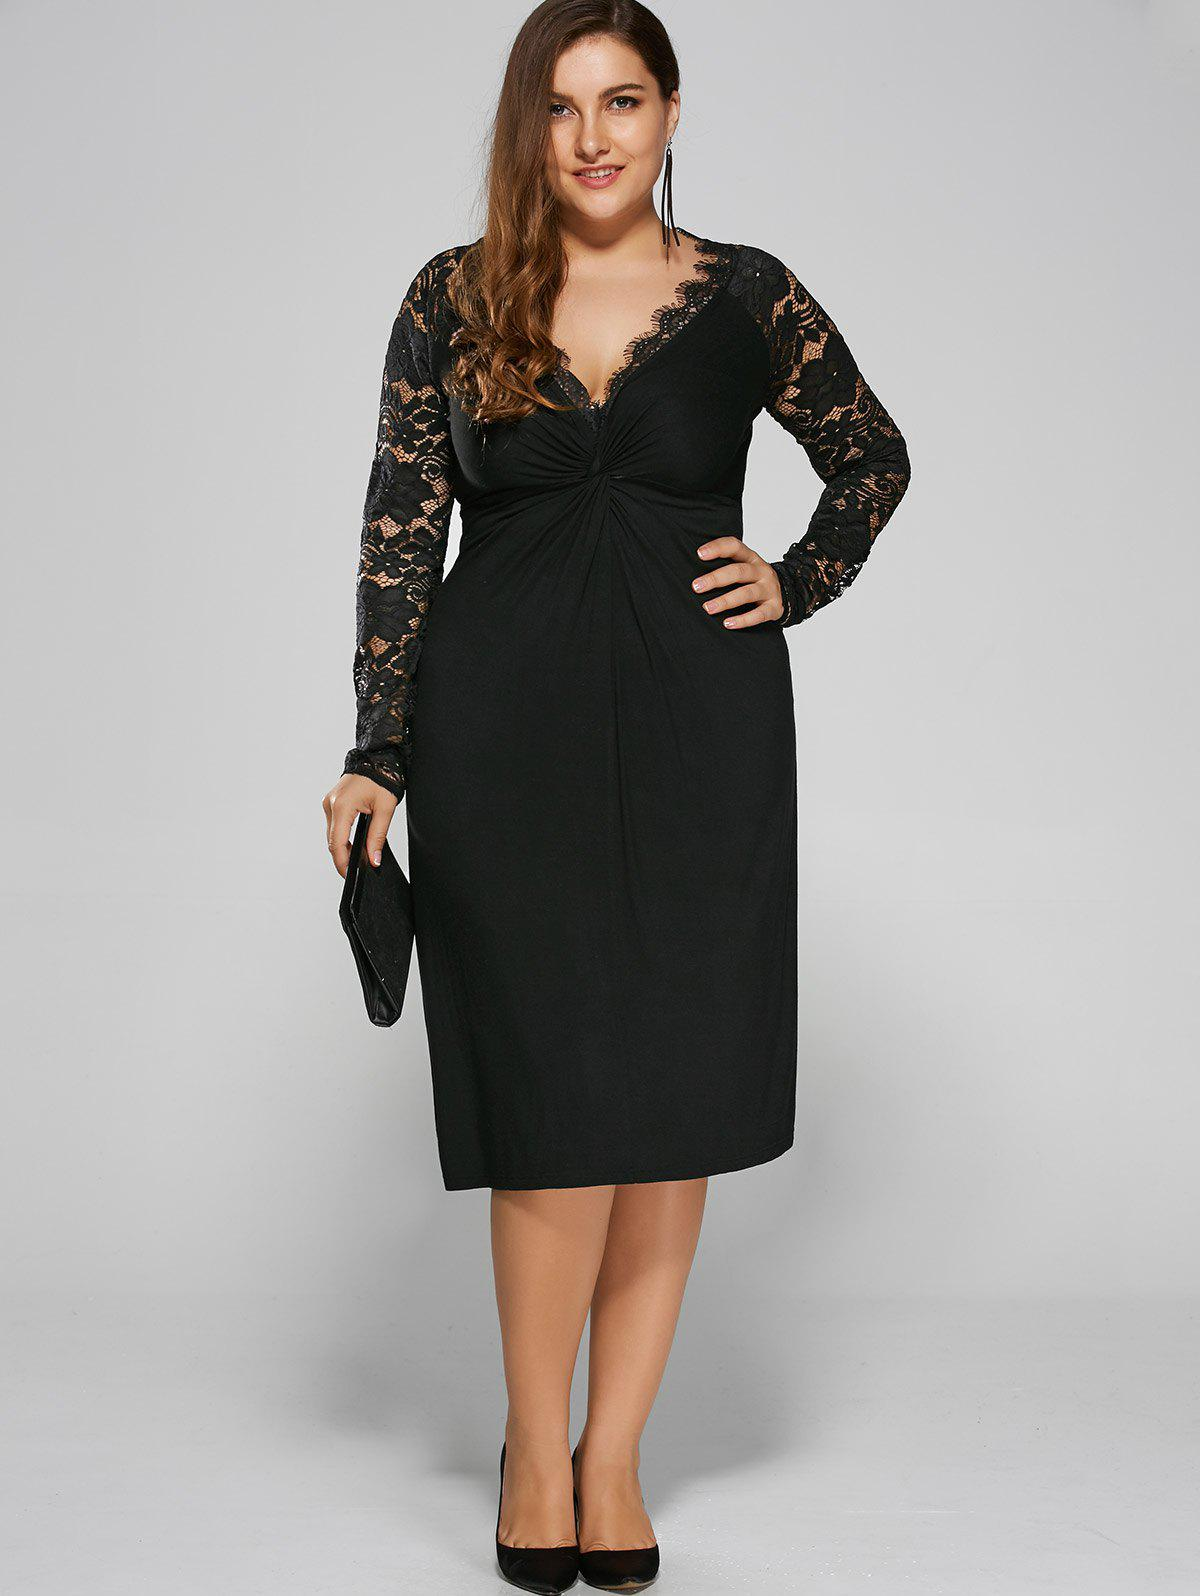 Plus Size Twist Front Lace Insert Fitted DressWOMEN<br><br>Size: XL; Color: BLACK; Style: Brief; Material: Polyester,Spandex; Silhouette: Straight; Dresses Length: Knee-Length; Neckline: Plunging Neck; Sleeve Length: Long Sleeves; Pattern Type: Floral; With Belt: No; Season: Fall,Spring; Weight: 0.3900kg; Package Contents: 1 x Dress;